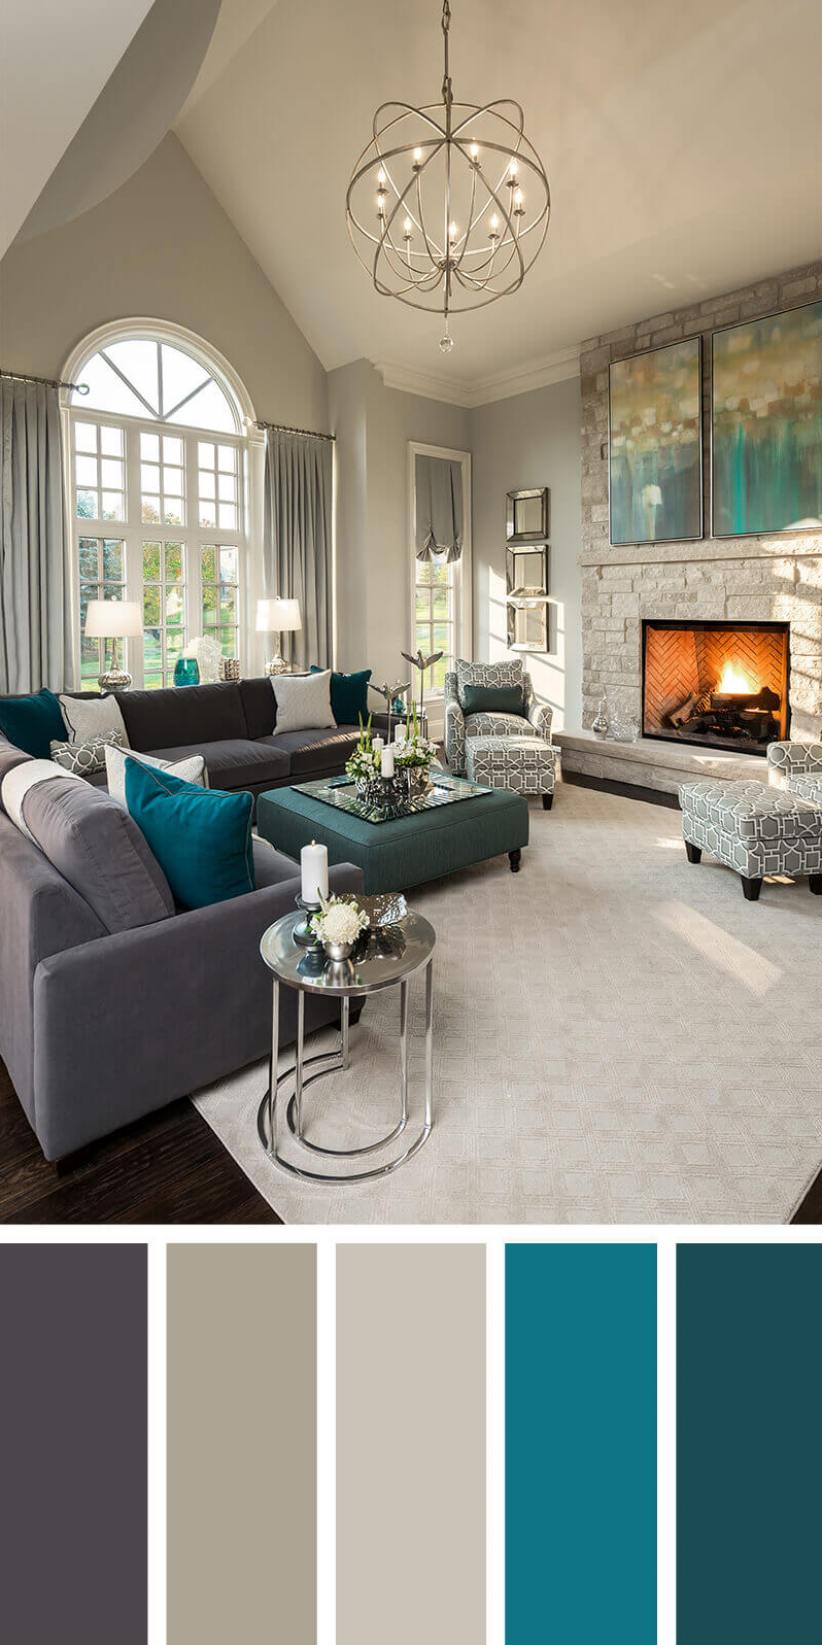 Best living room color schemes grey #livingroomcolorschemes #livingroomcolorcombination